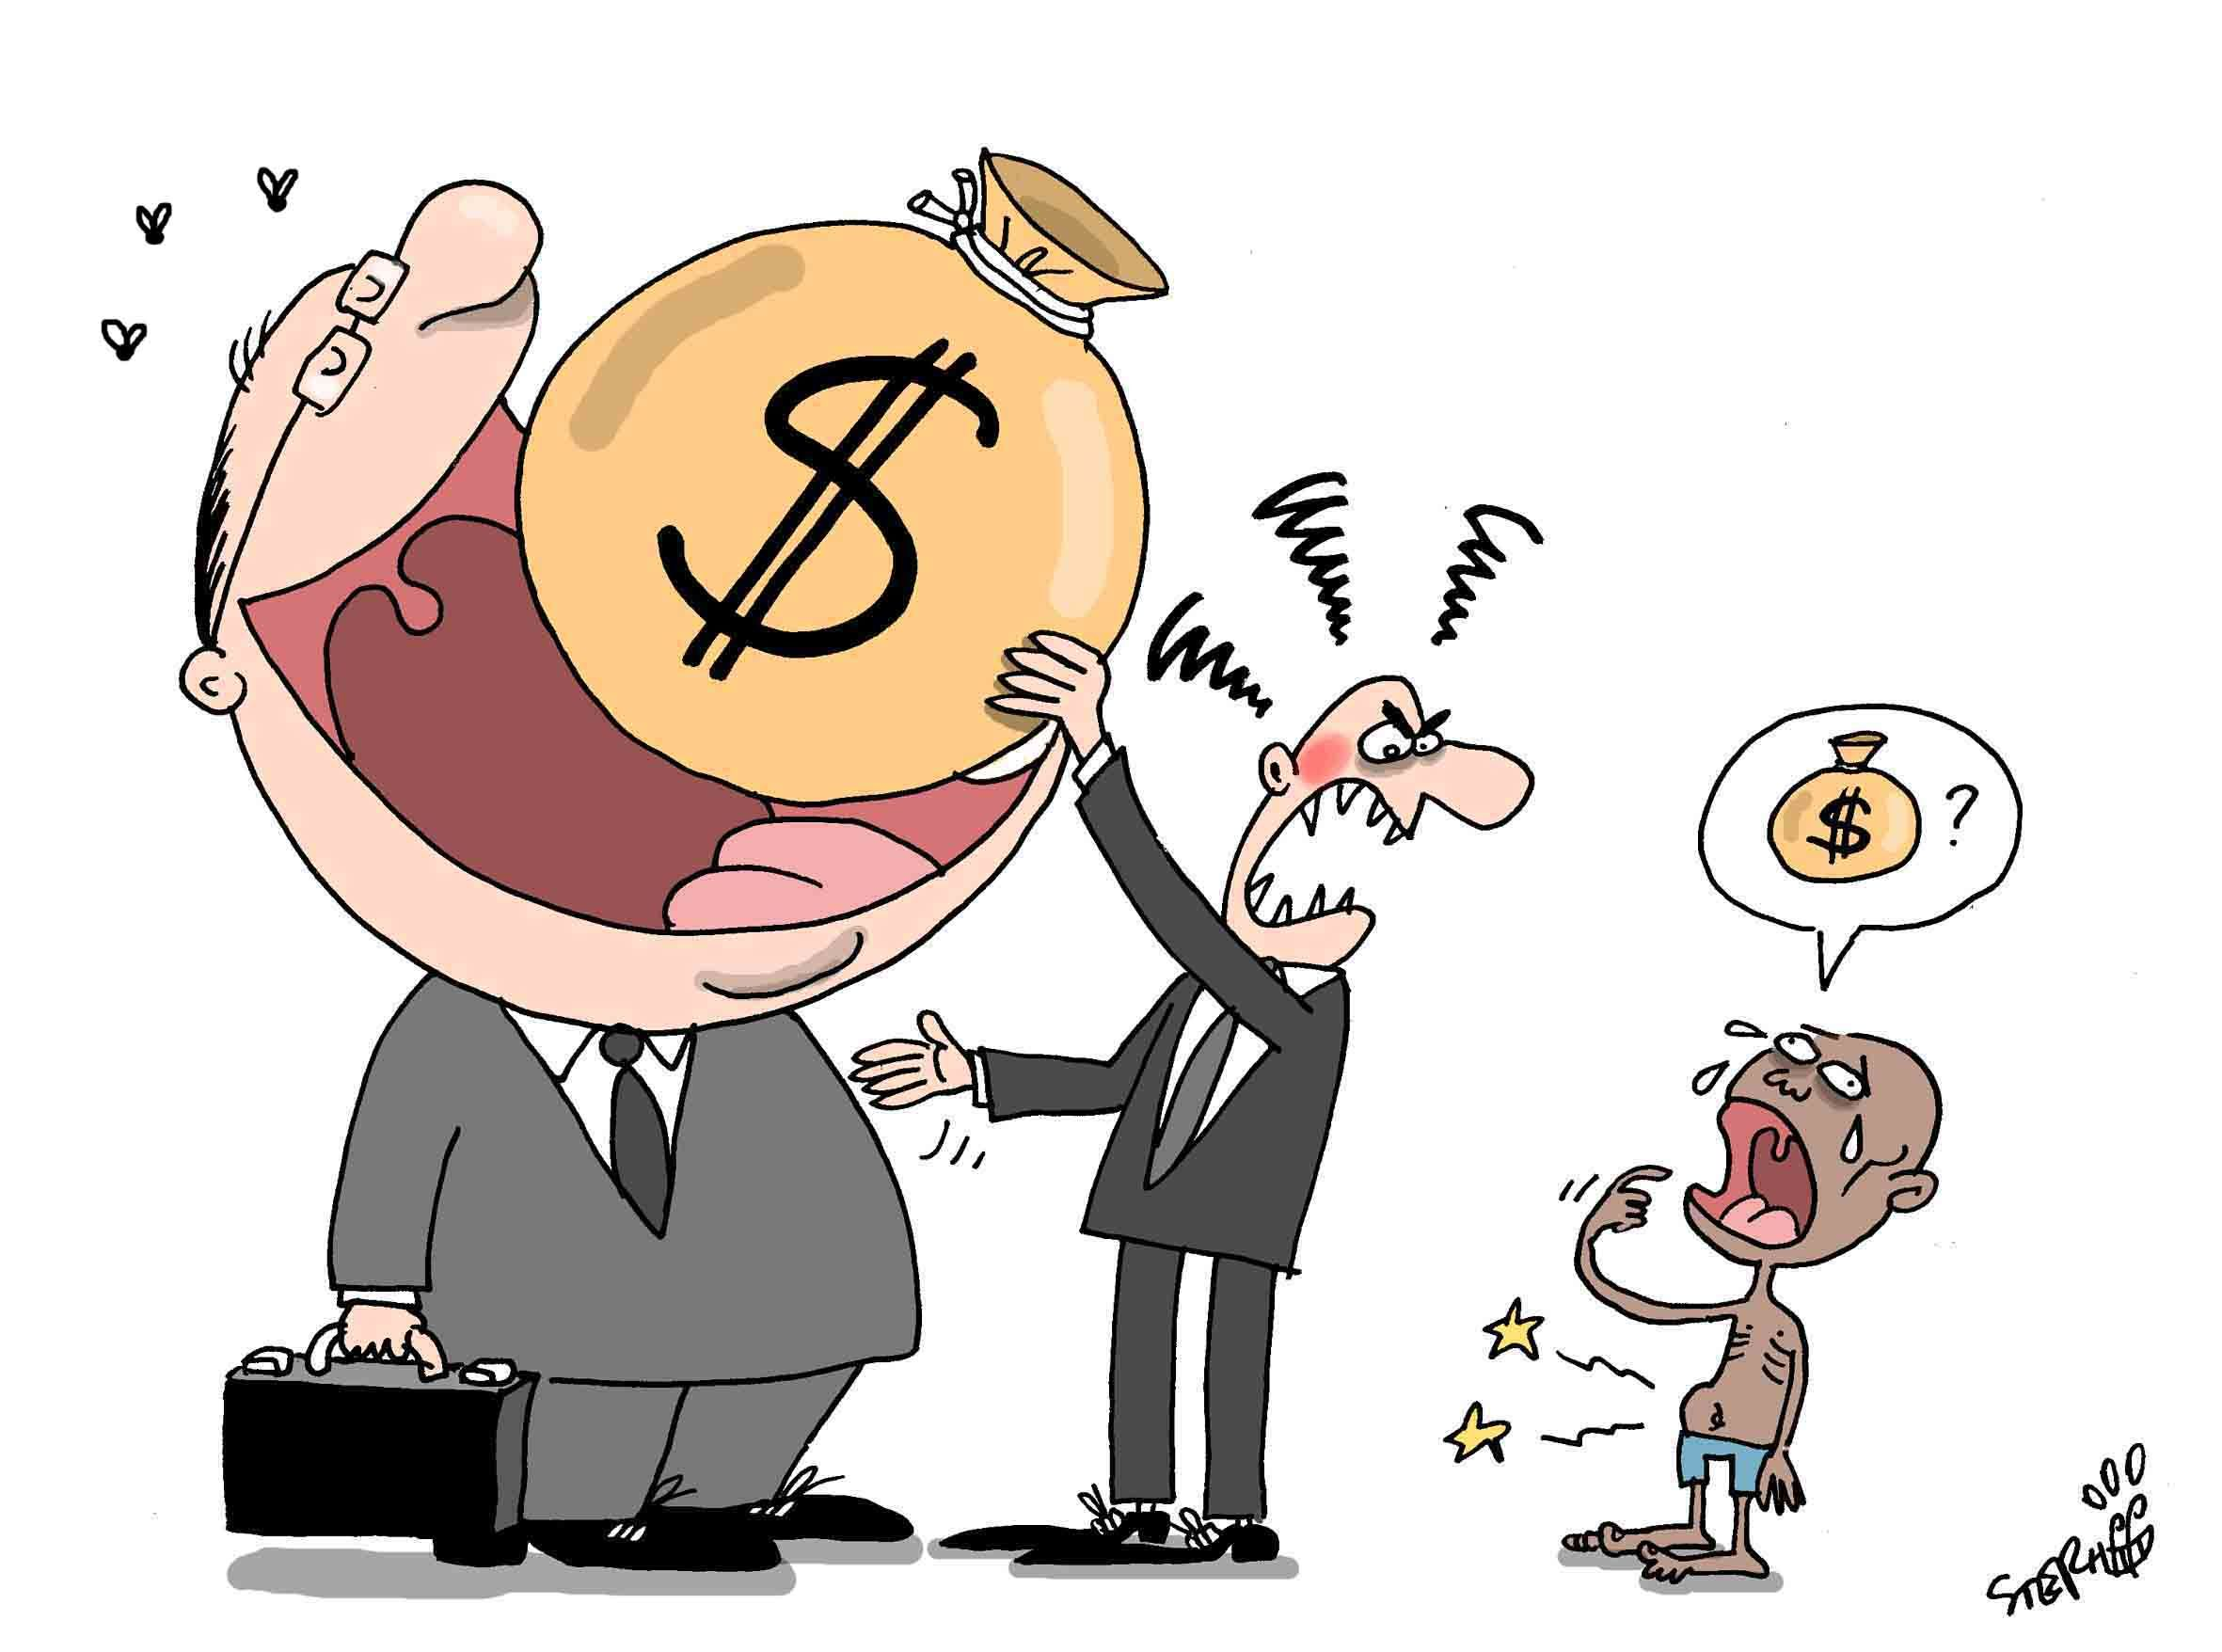 World bank bailout copyright by stephff contact